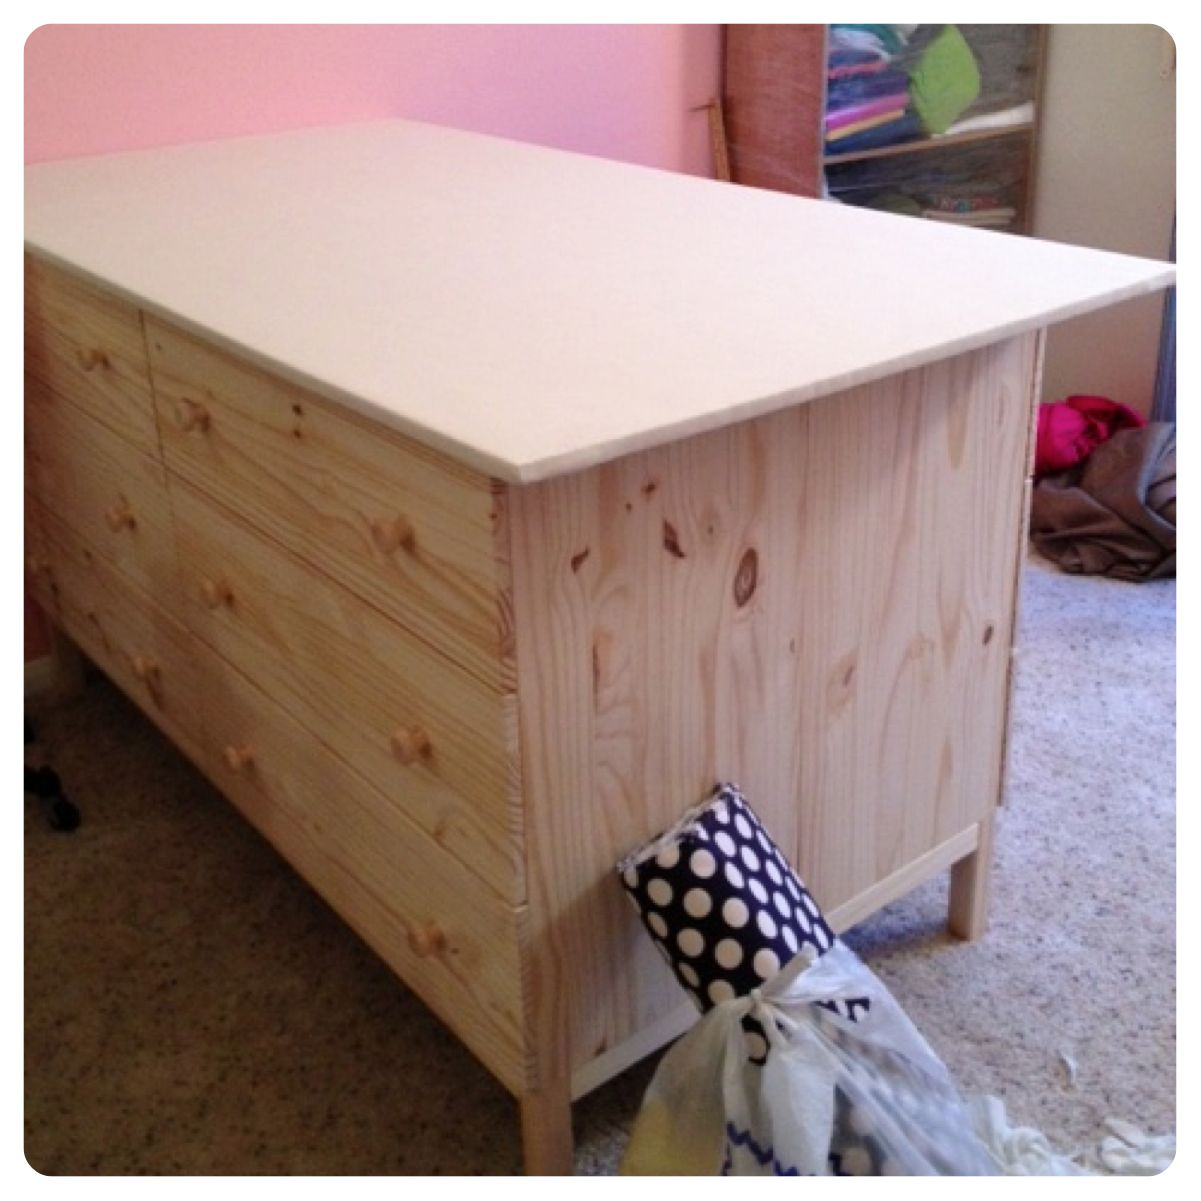 Diy Craft Room Table: Pin On Ikea HACKS